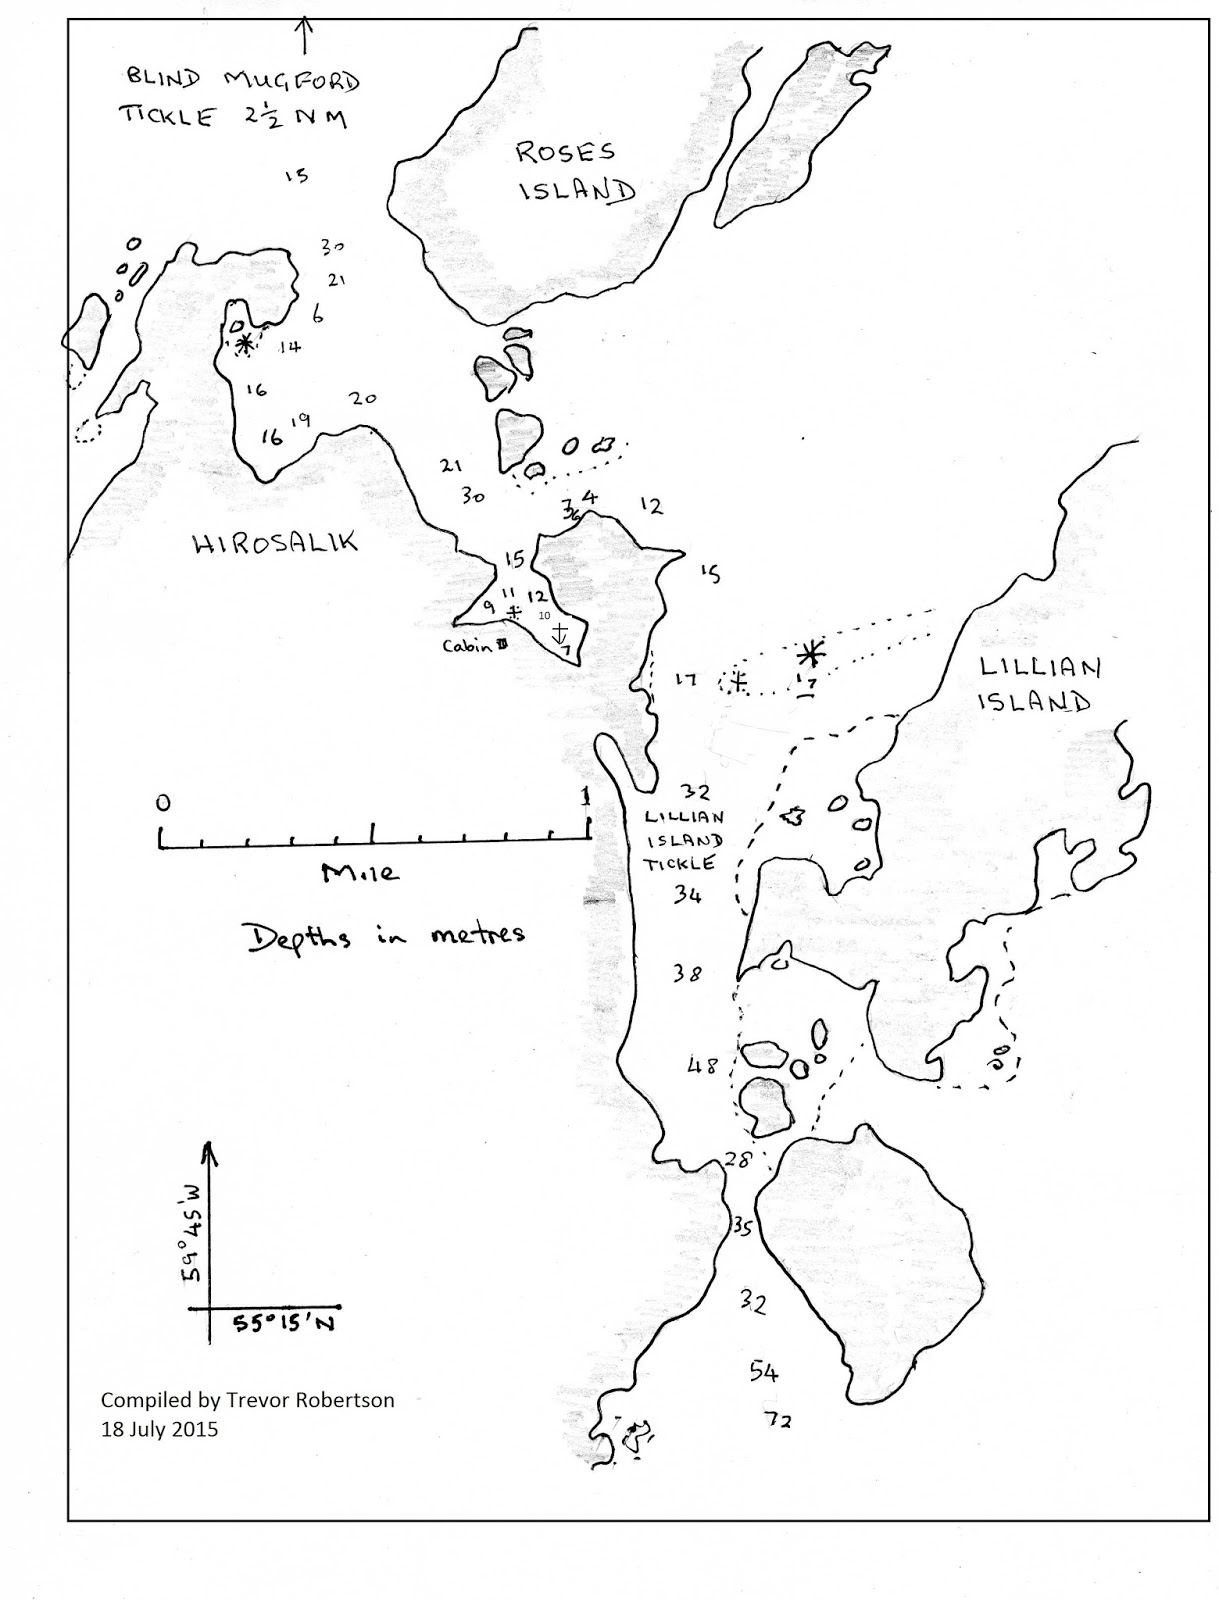 Iron barks travels i spent a night in the roses island anchorage and sounded it for a sketch chart then two days of fair weather allowed me to sail 100nm to tom gears run nvjuhfo Image collections